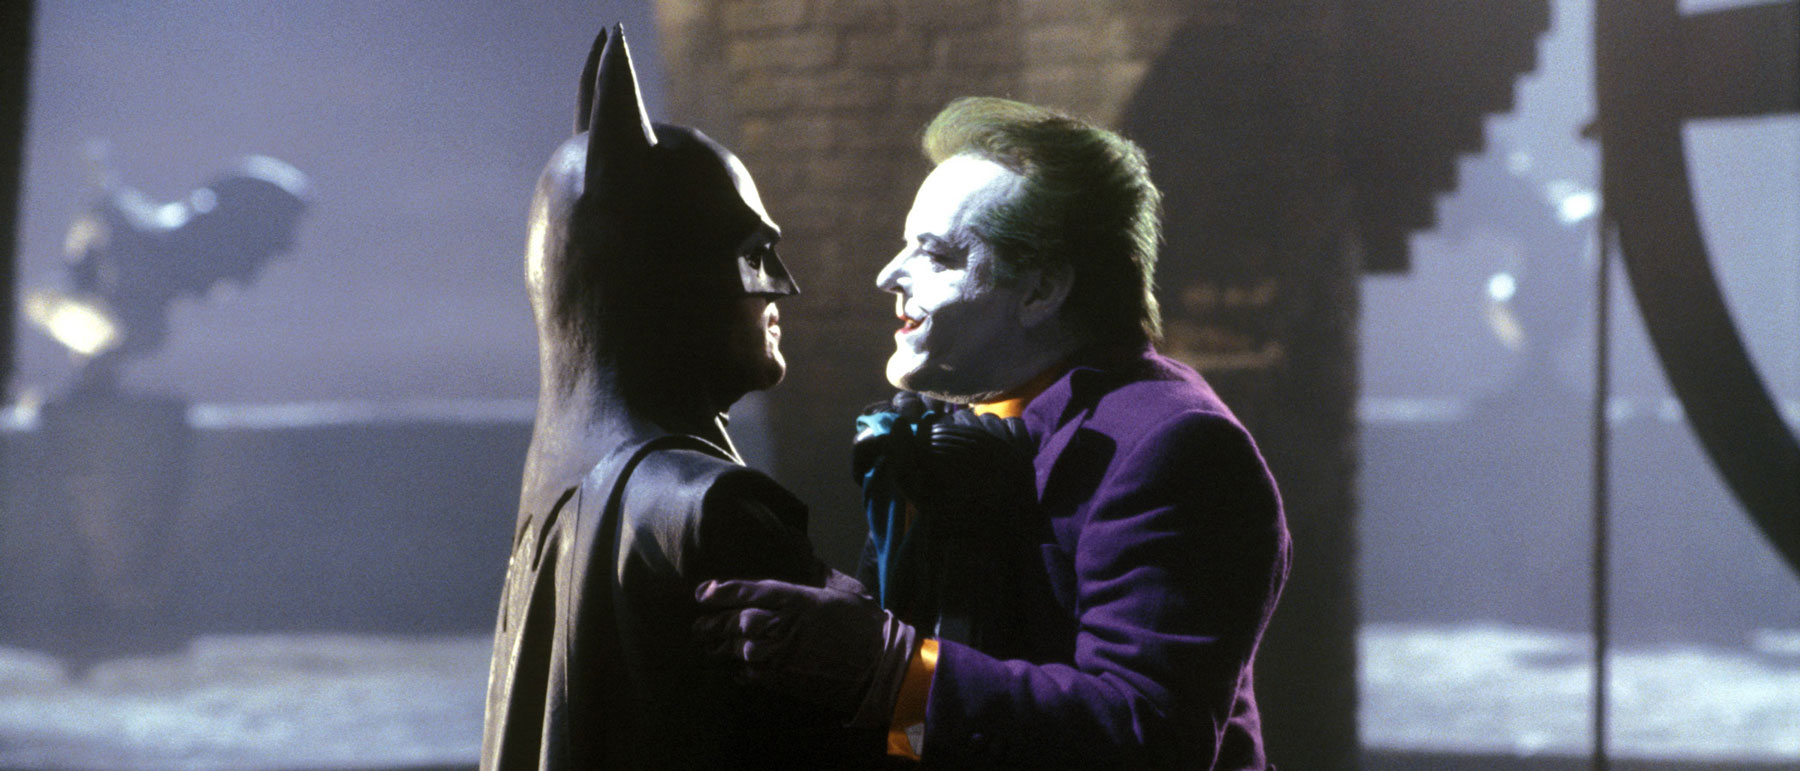 Michael Keaton's Batman and Jack Nicholson's Joker in Tim Burton's Batman